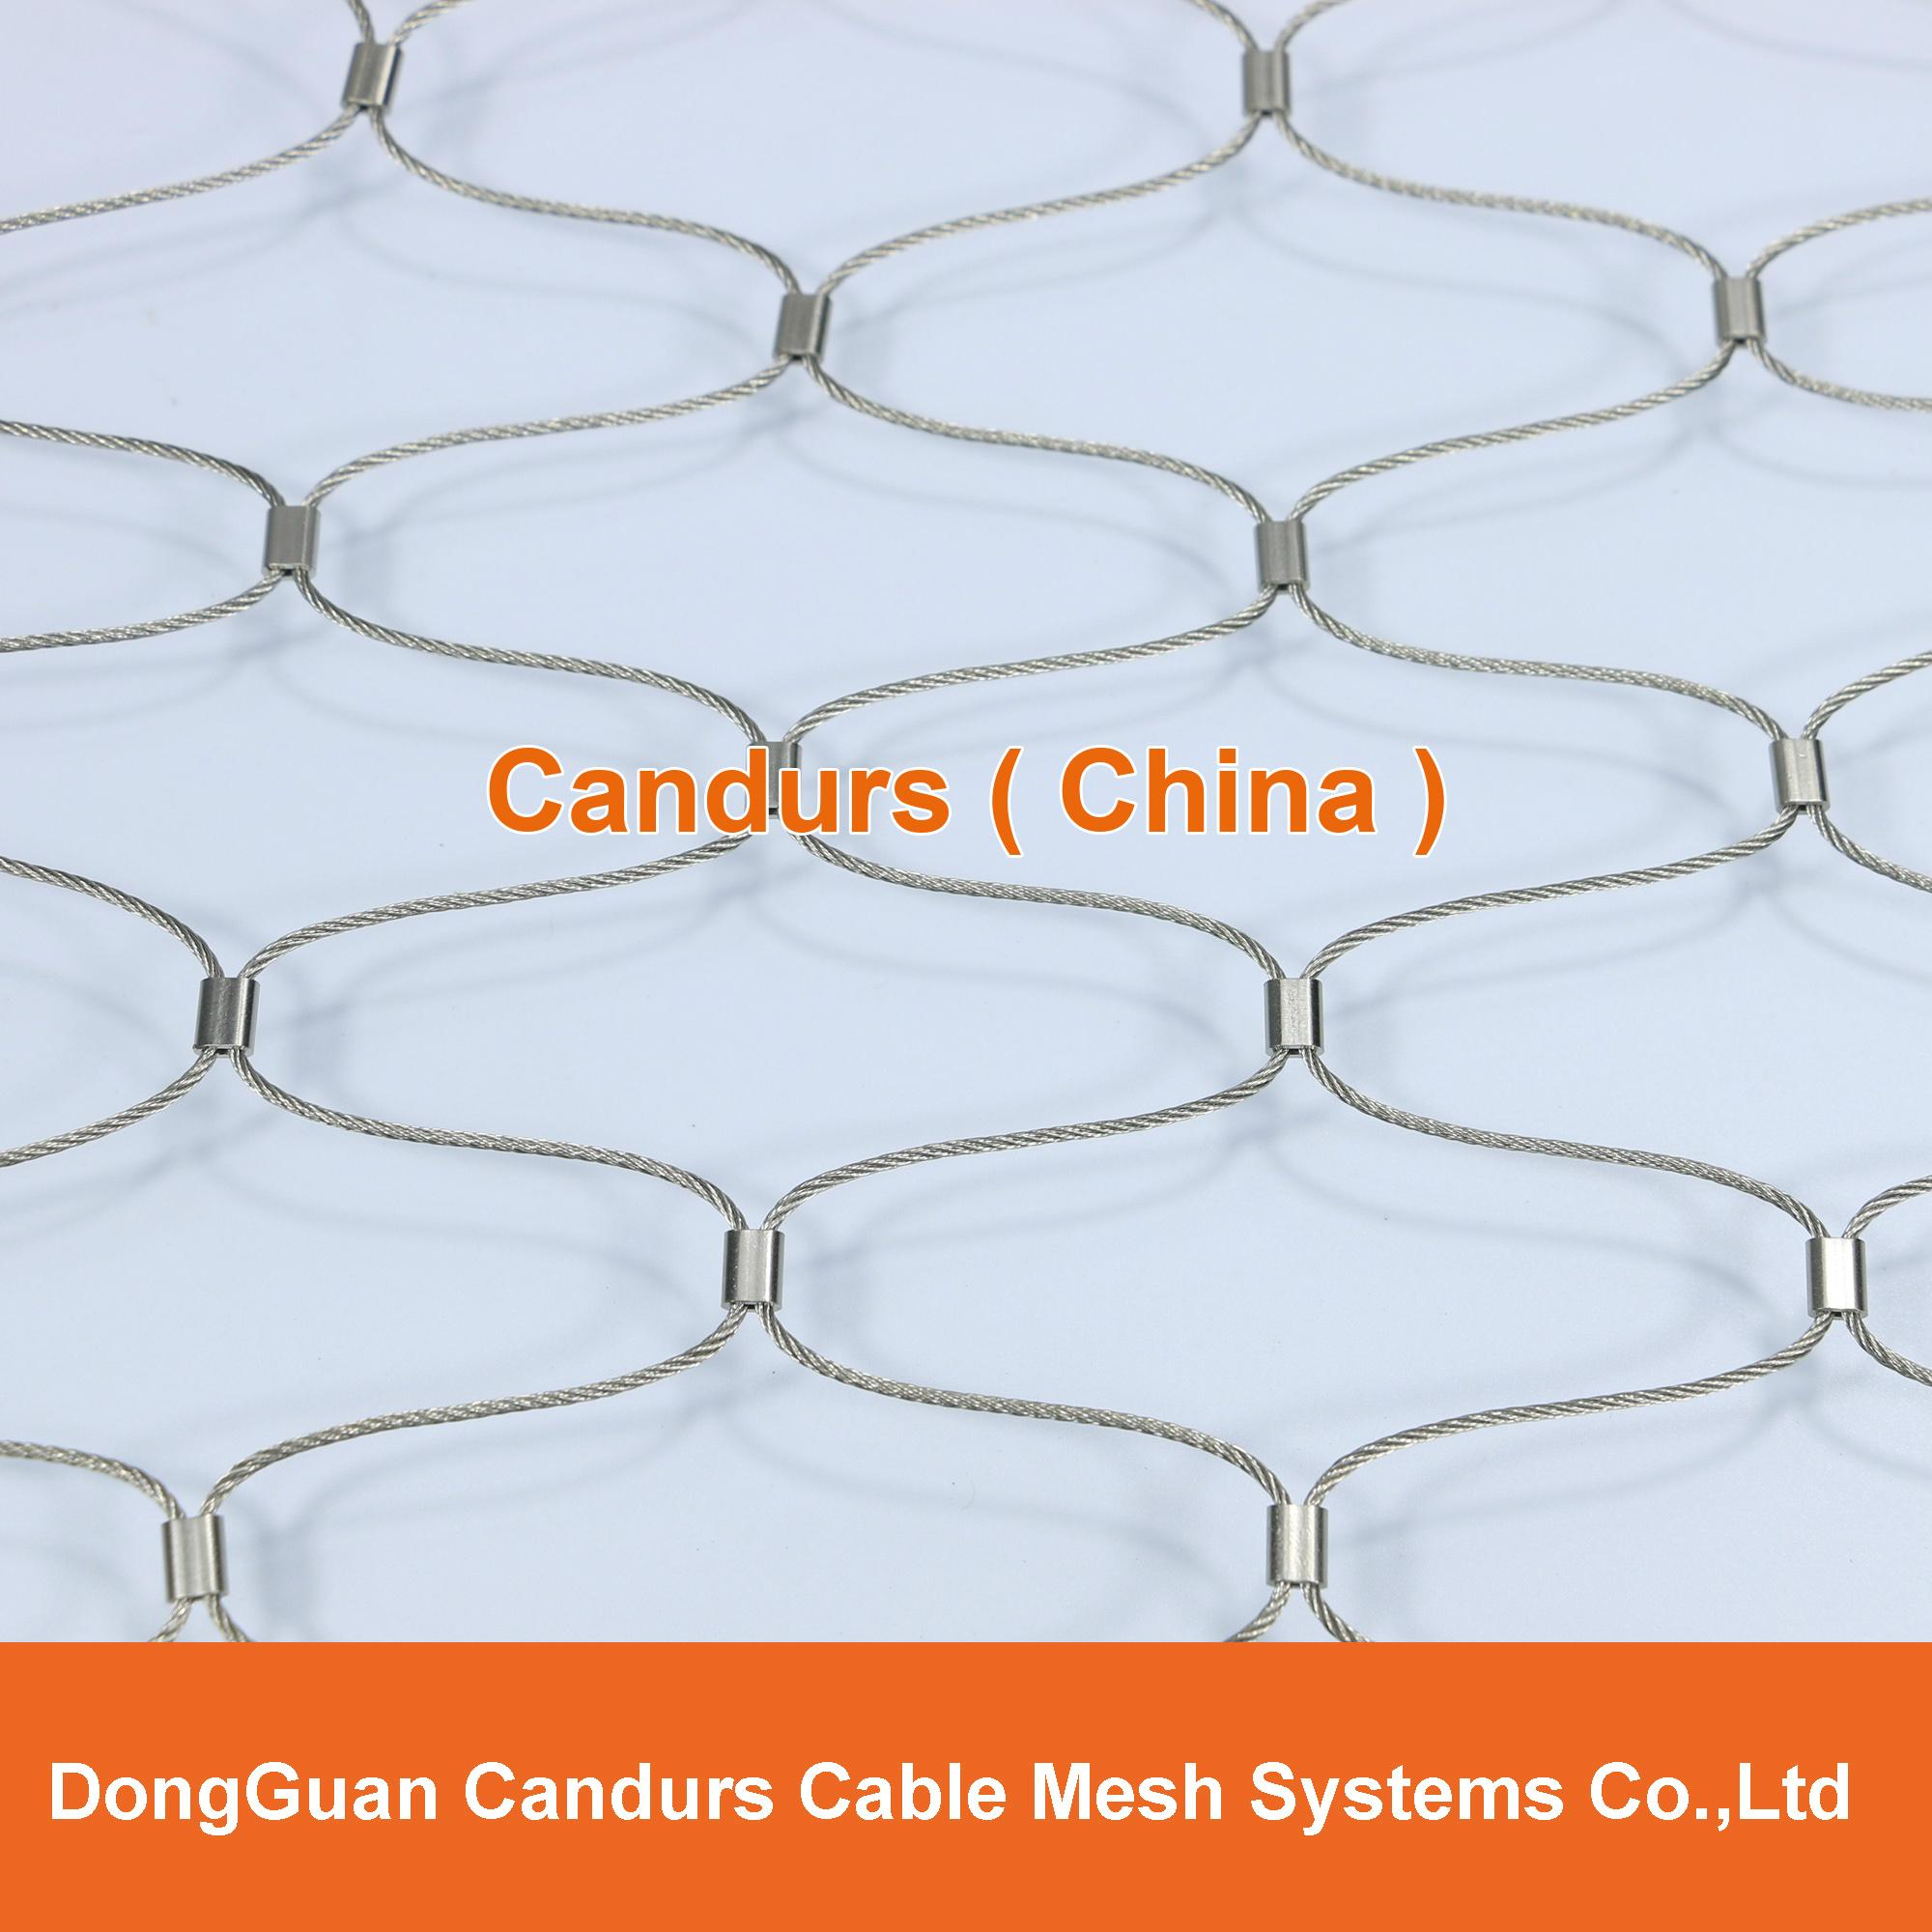 X Tend Flexible Stainless Steel Cable (Rope) Mesh 12